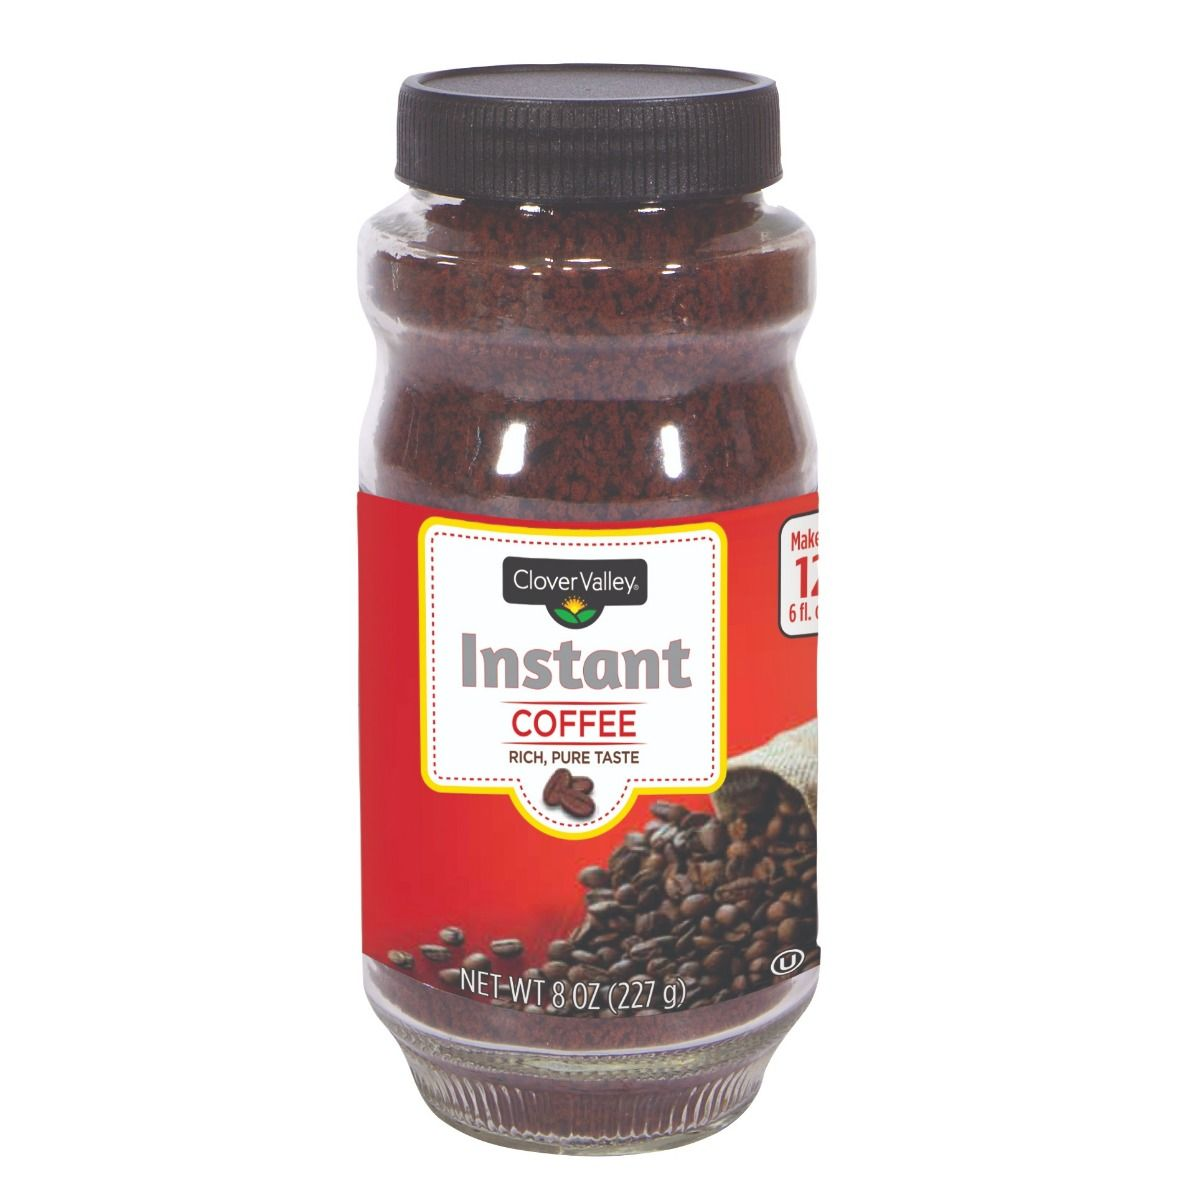 Clover Valley Instant Coffee - 8 oz